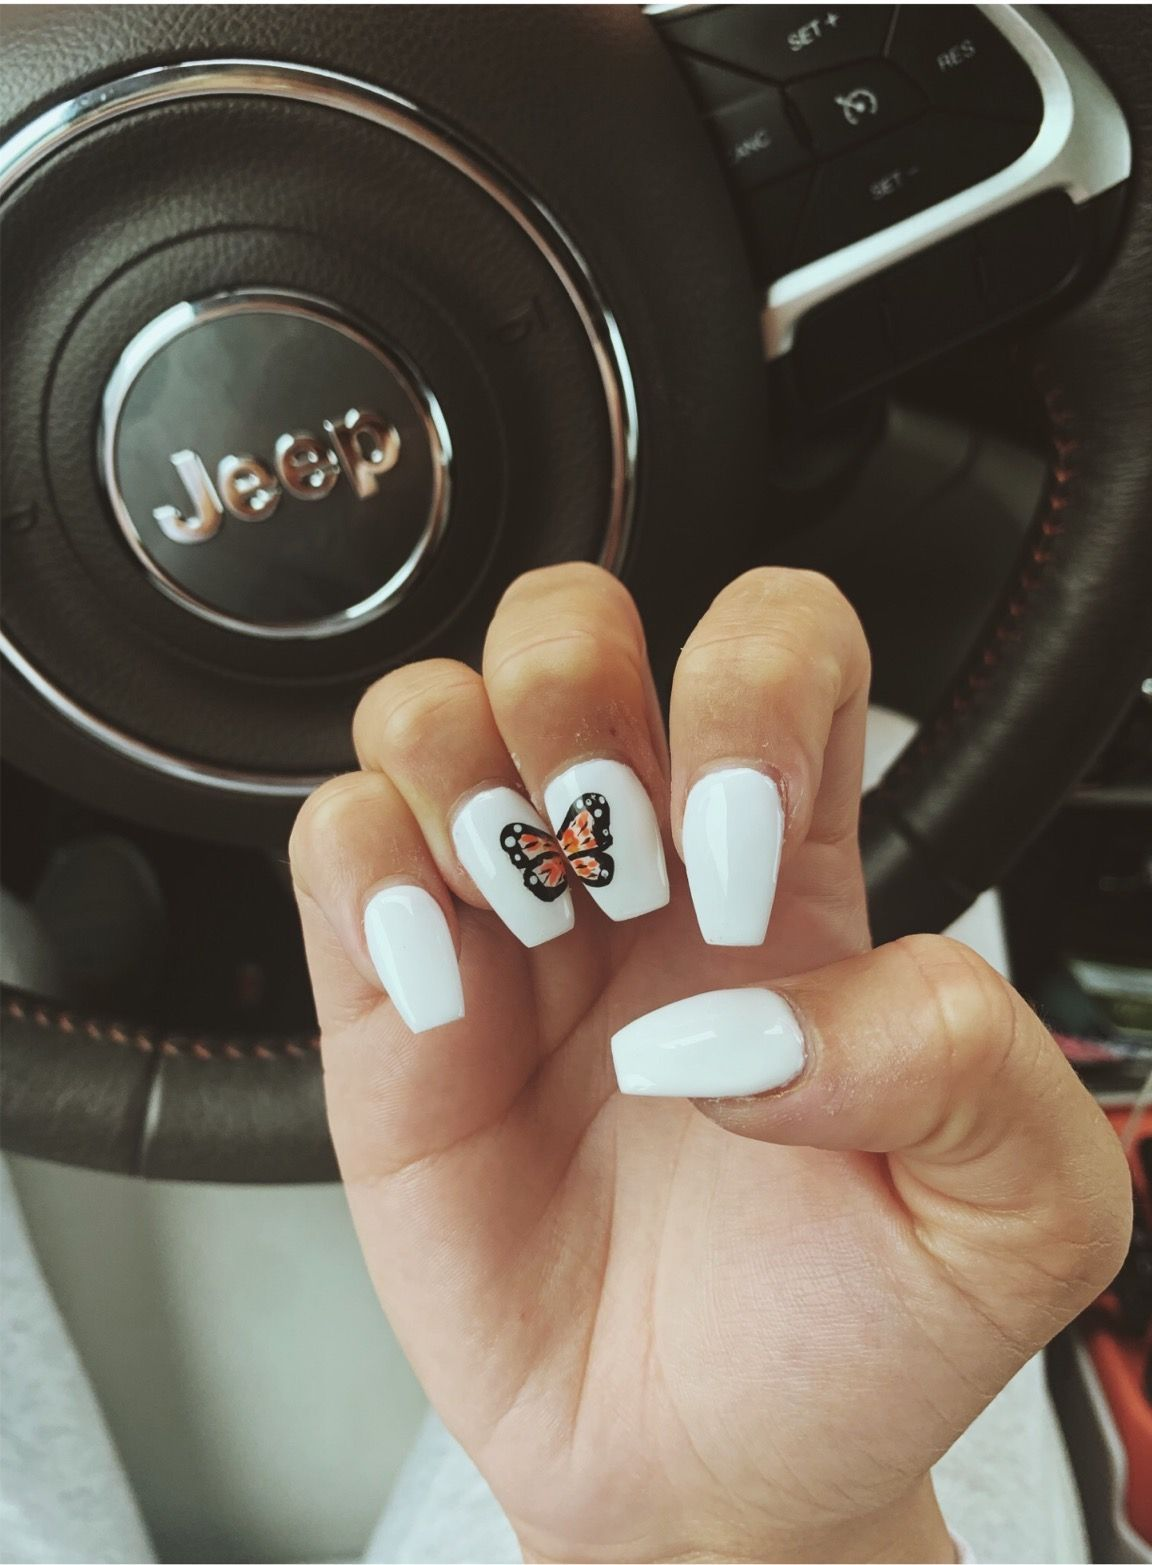 Acrylic nail designs 580823683180100665 -  Source by snies7165